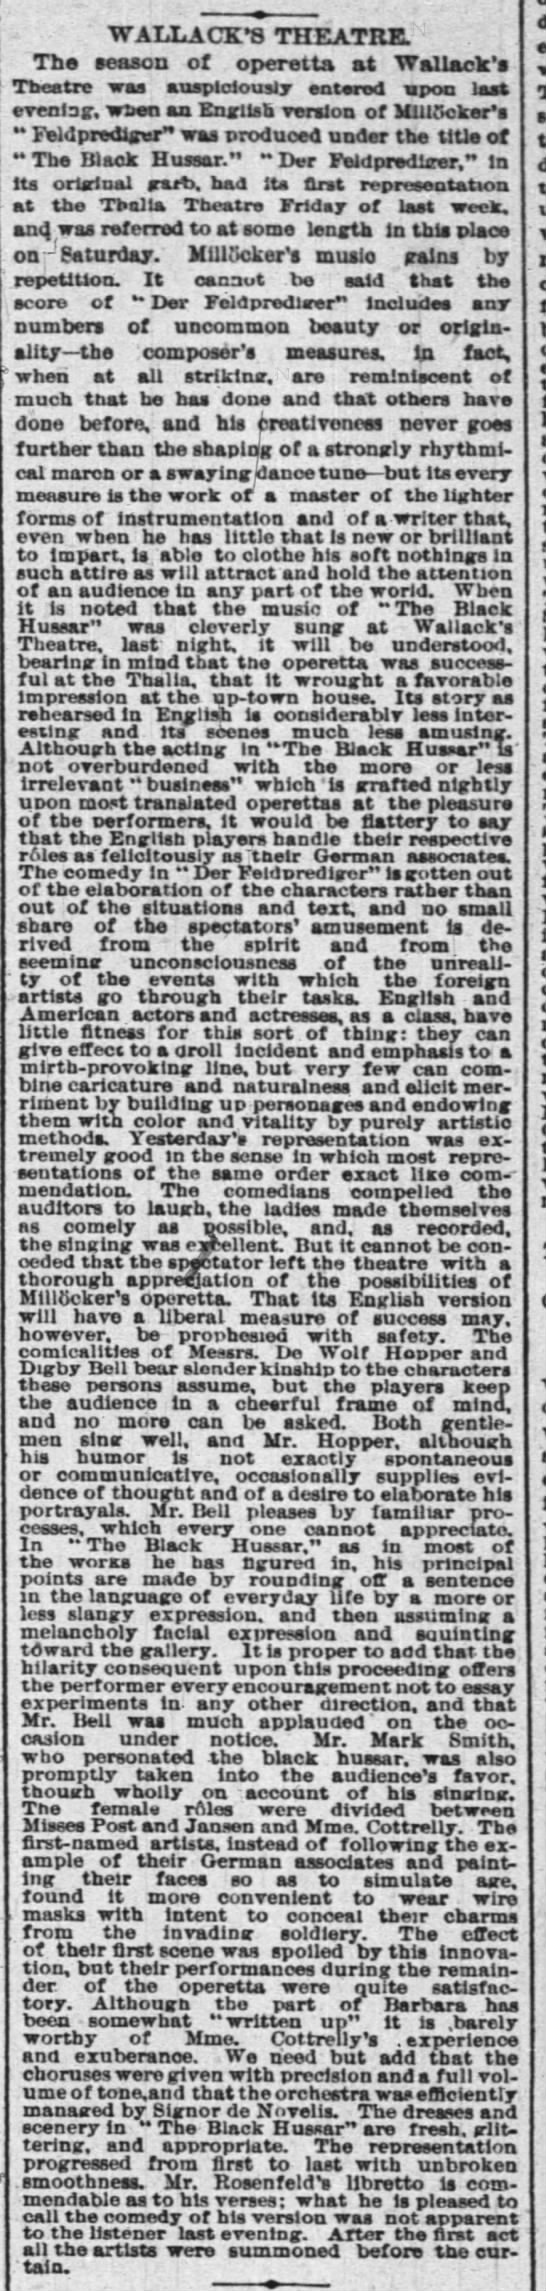 Review of The Black Hussar at Wallack's NYTimes 5 May 1885